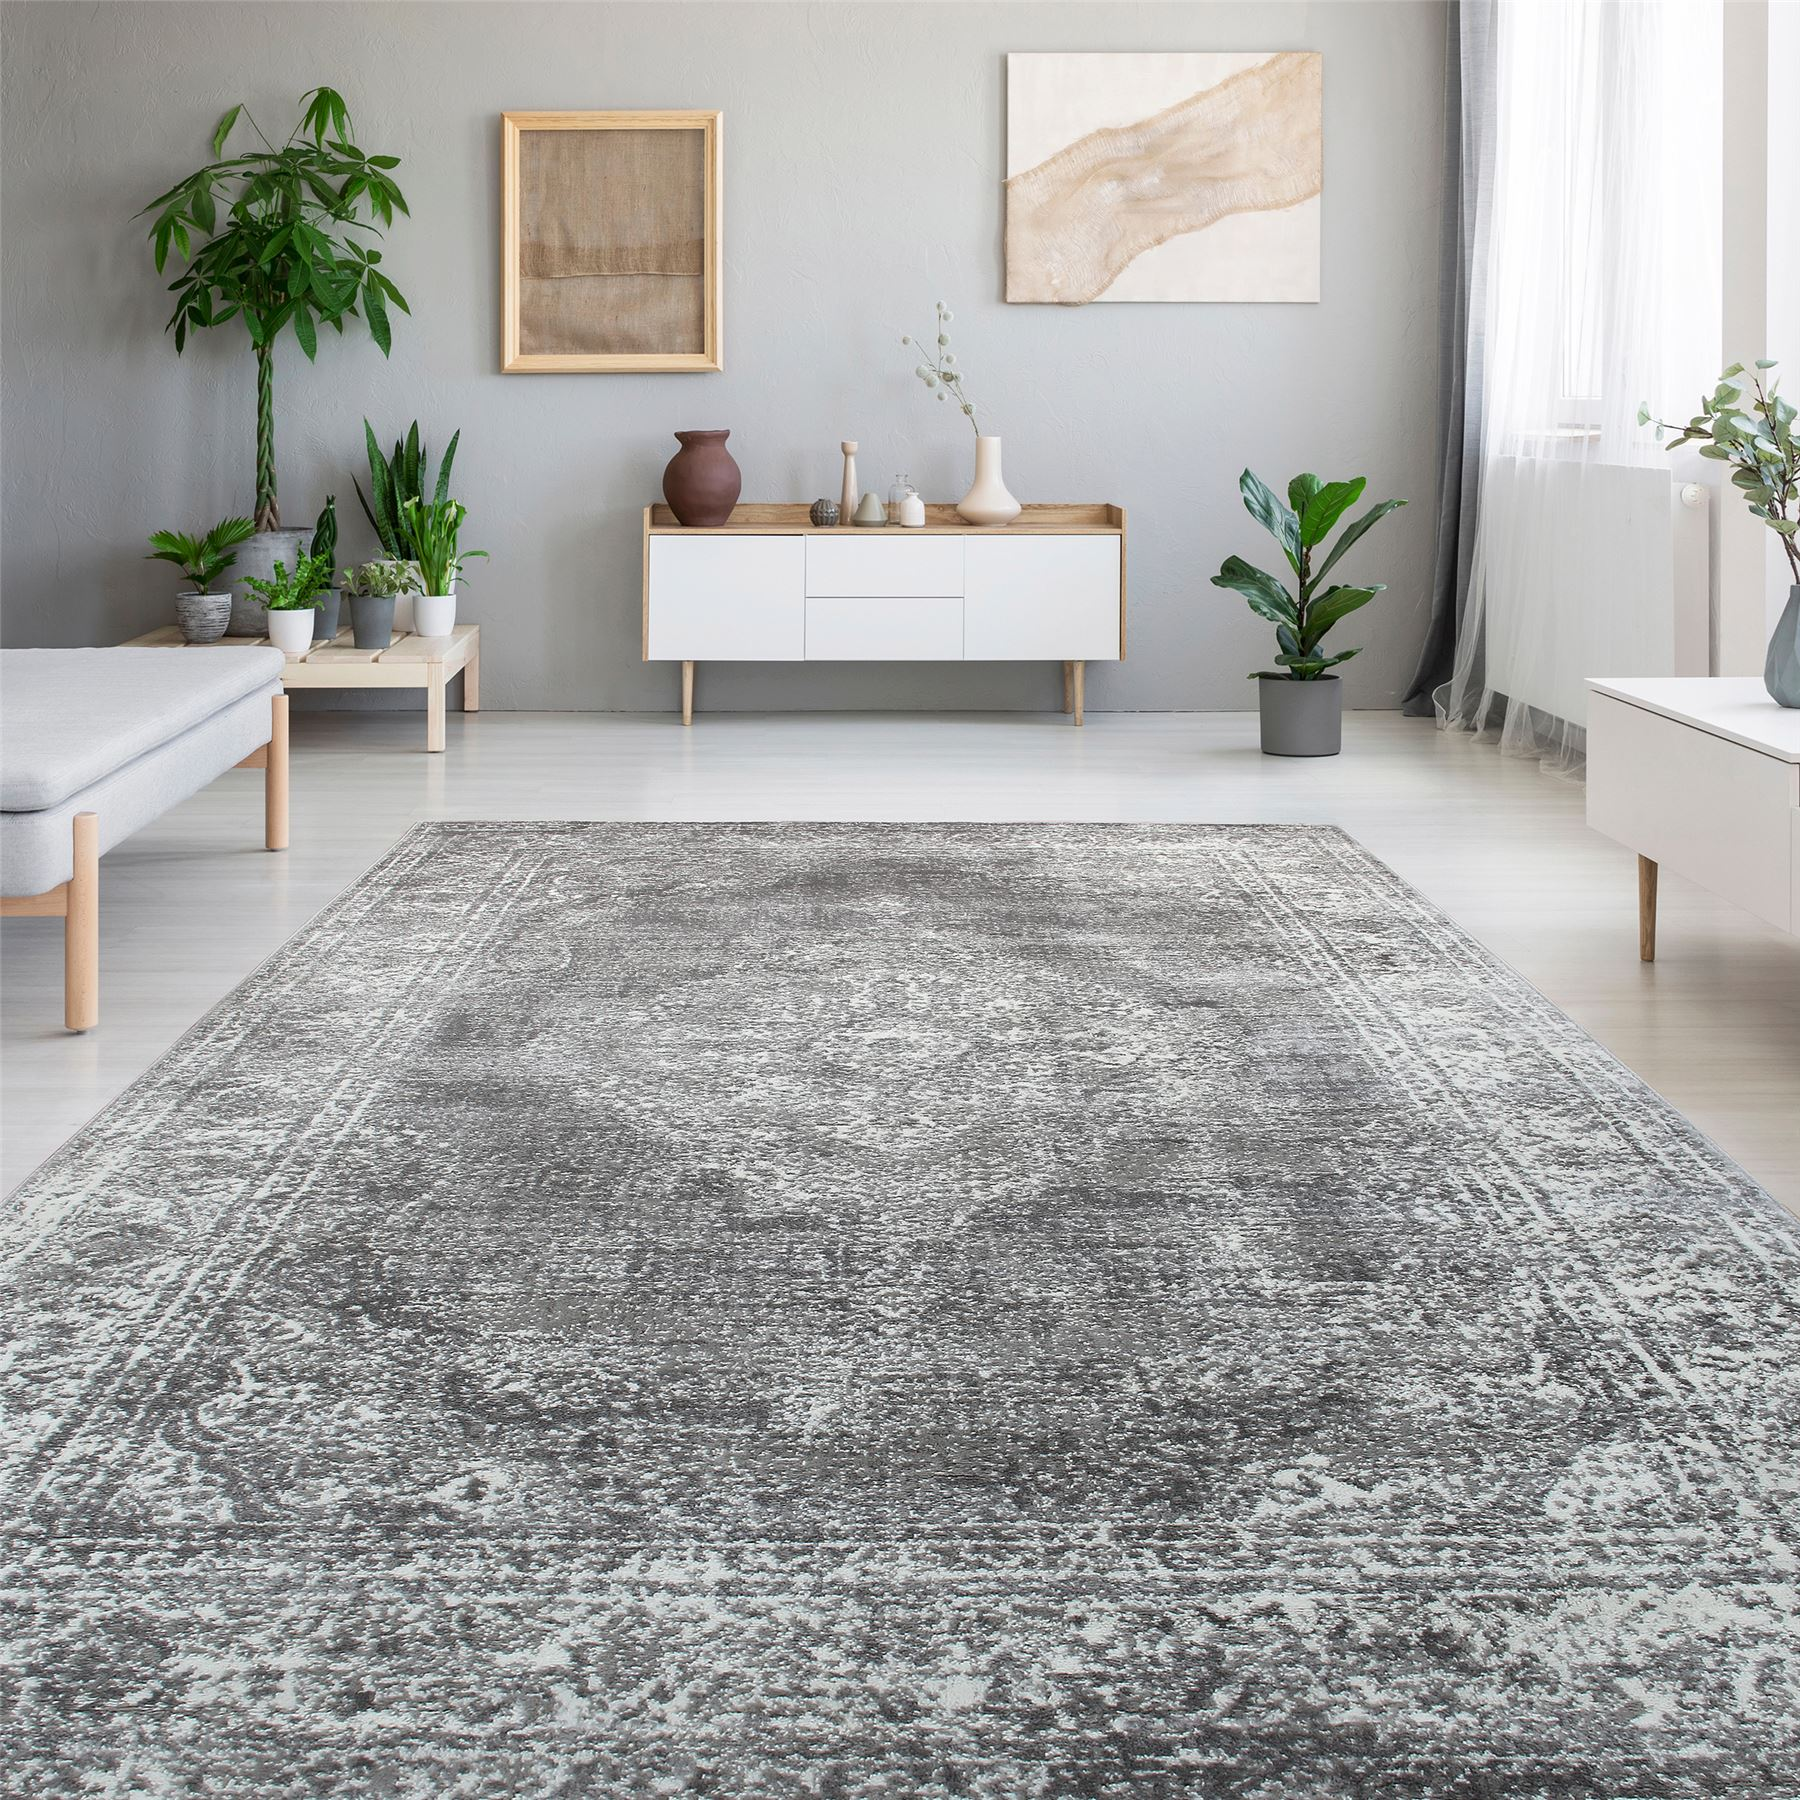 Details About Large Medium Grey Oriental Dining Room Rugs Luxury Floral Rug Runners 10mm Pile